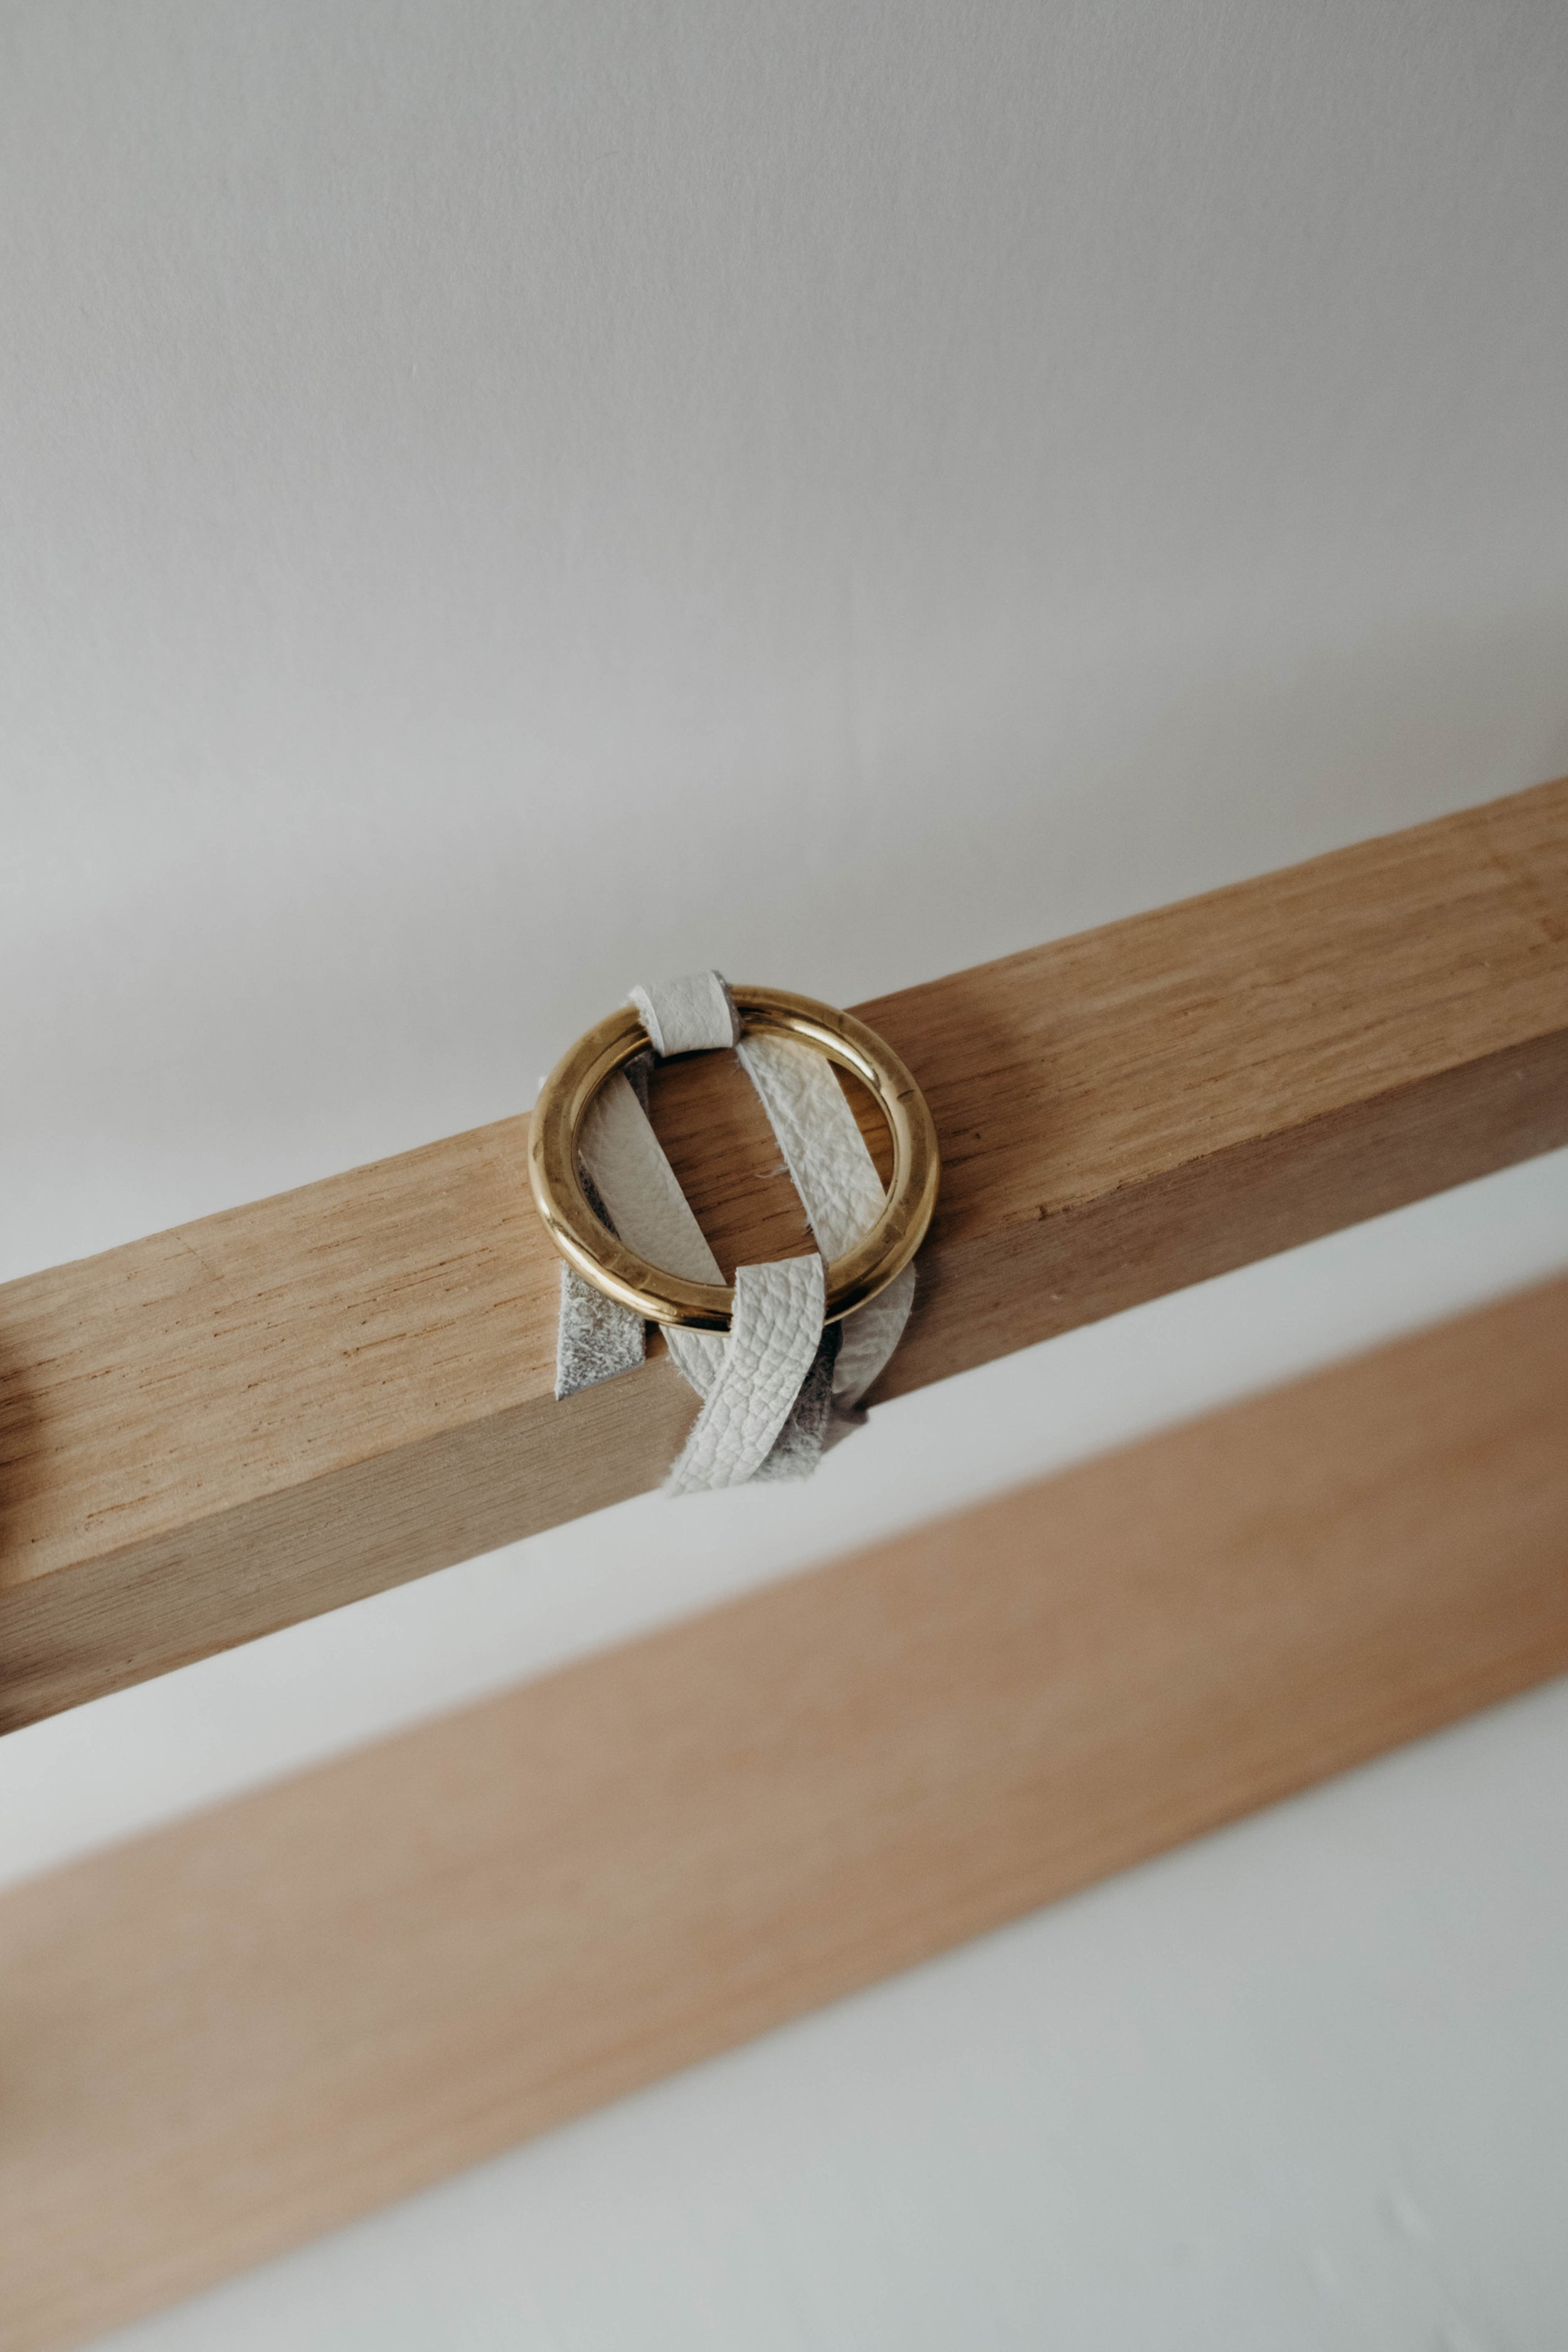 Gresham Large Ring Chestnut or White Leather Wrap Bracelet with Large Nickel or Brass Ring